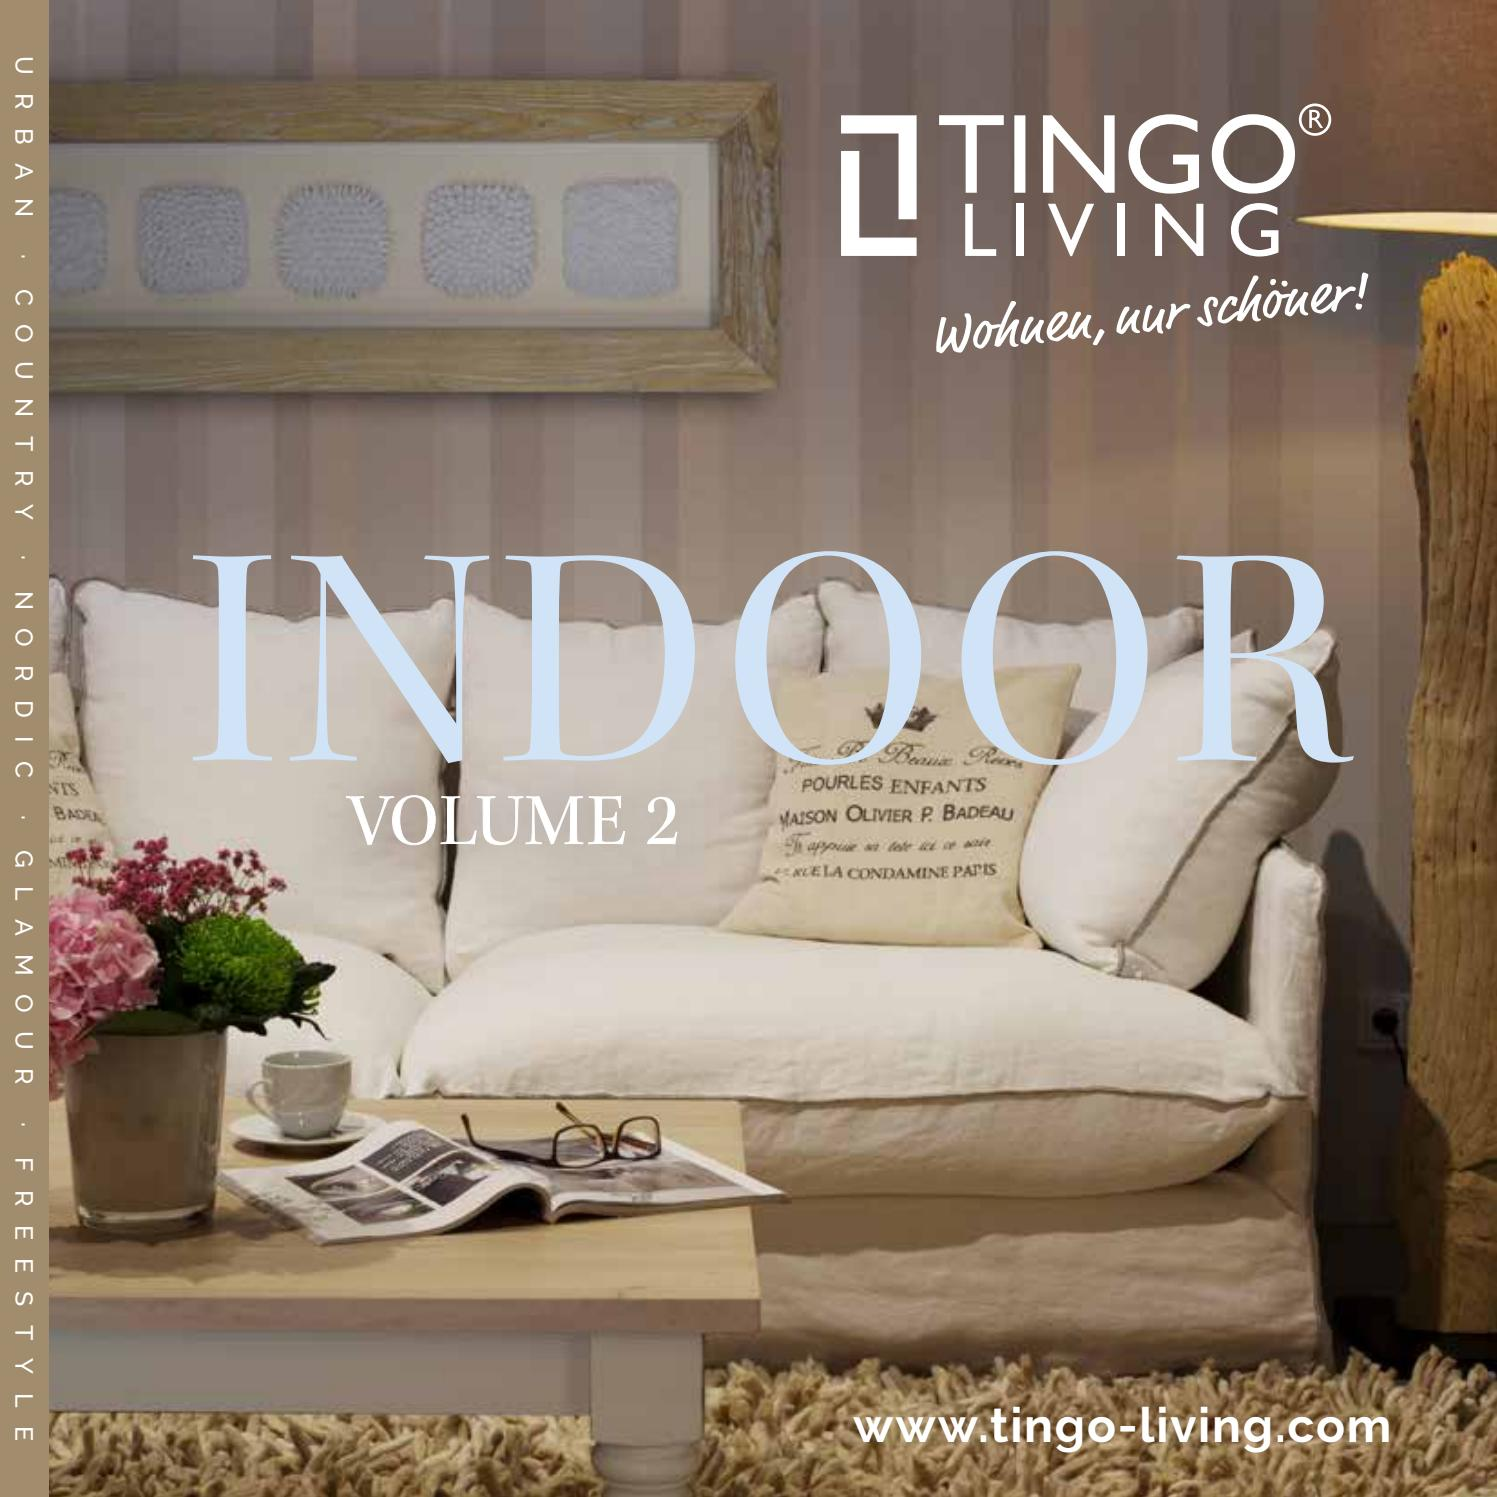 Elegant Tingo Living Indoor Katalog Vol. 2 By TINGO LIVING   Issuu